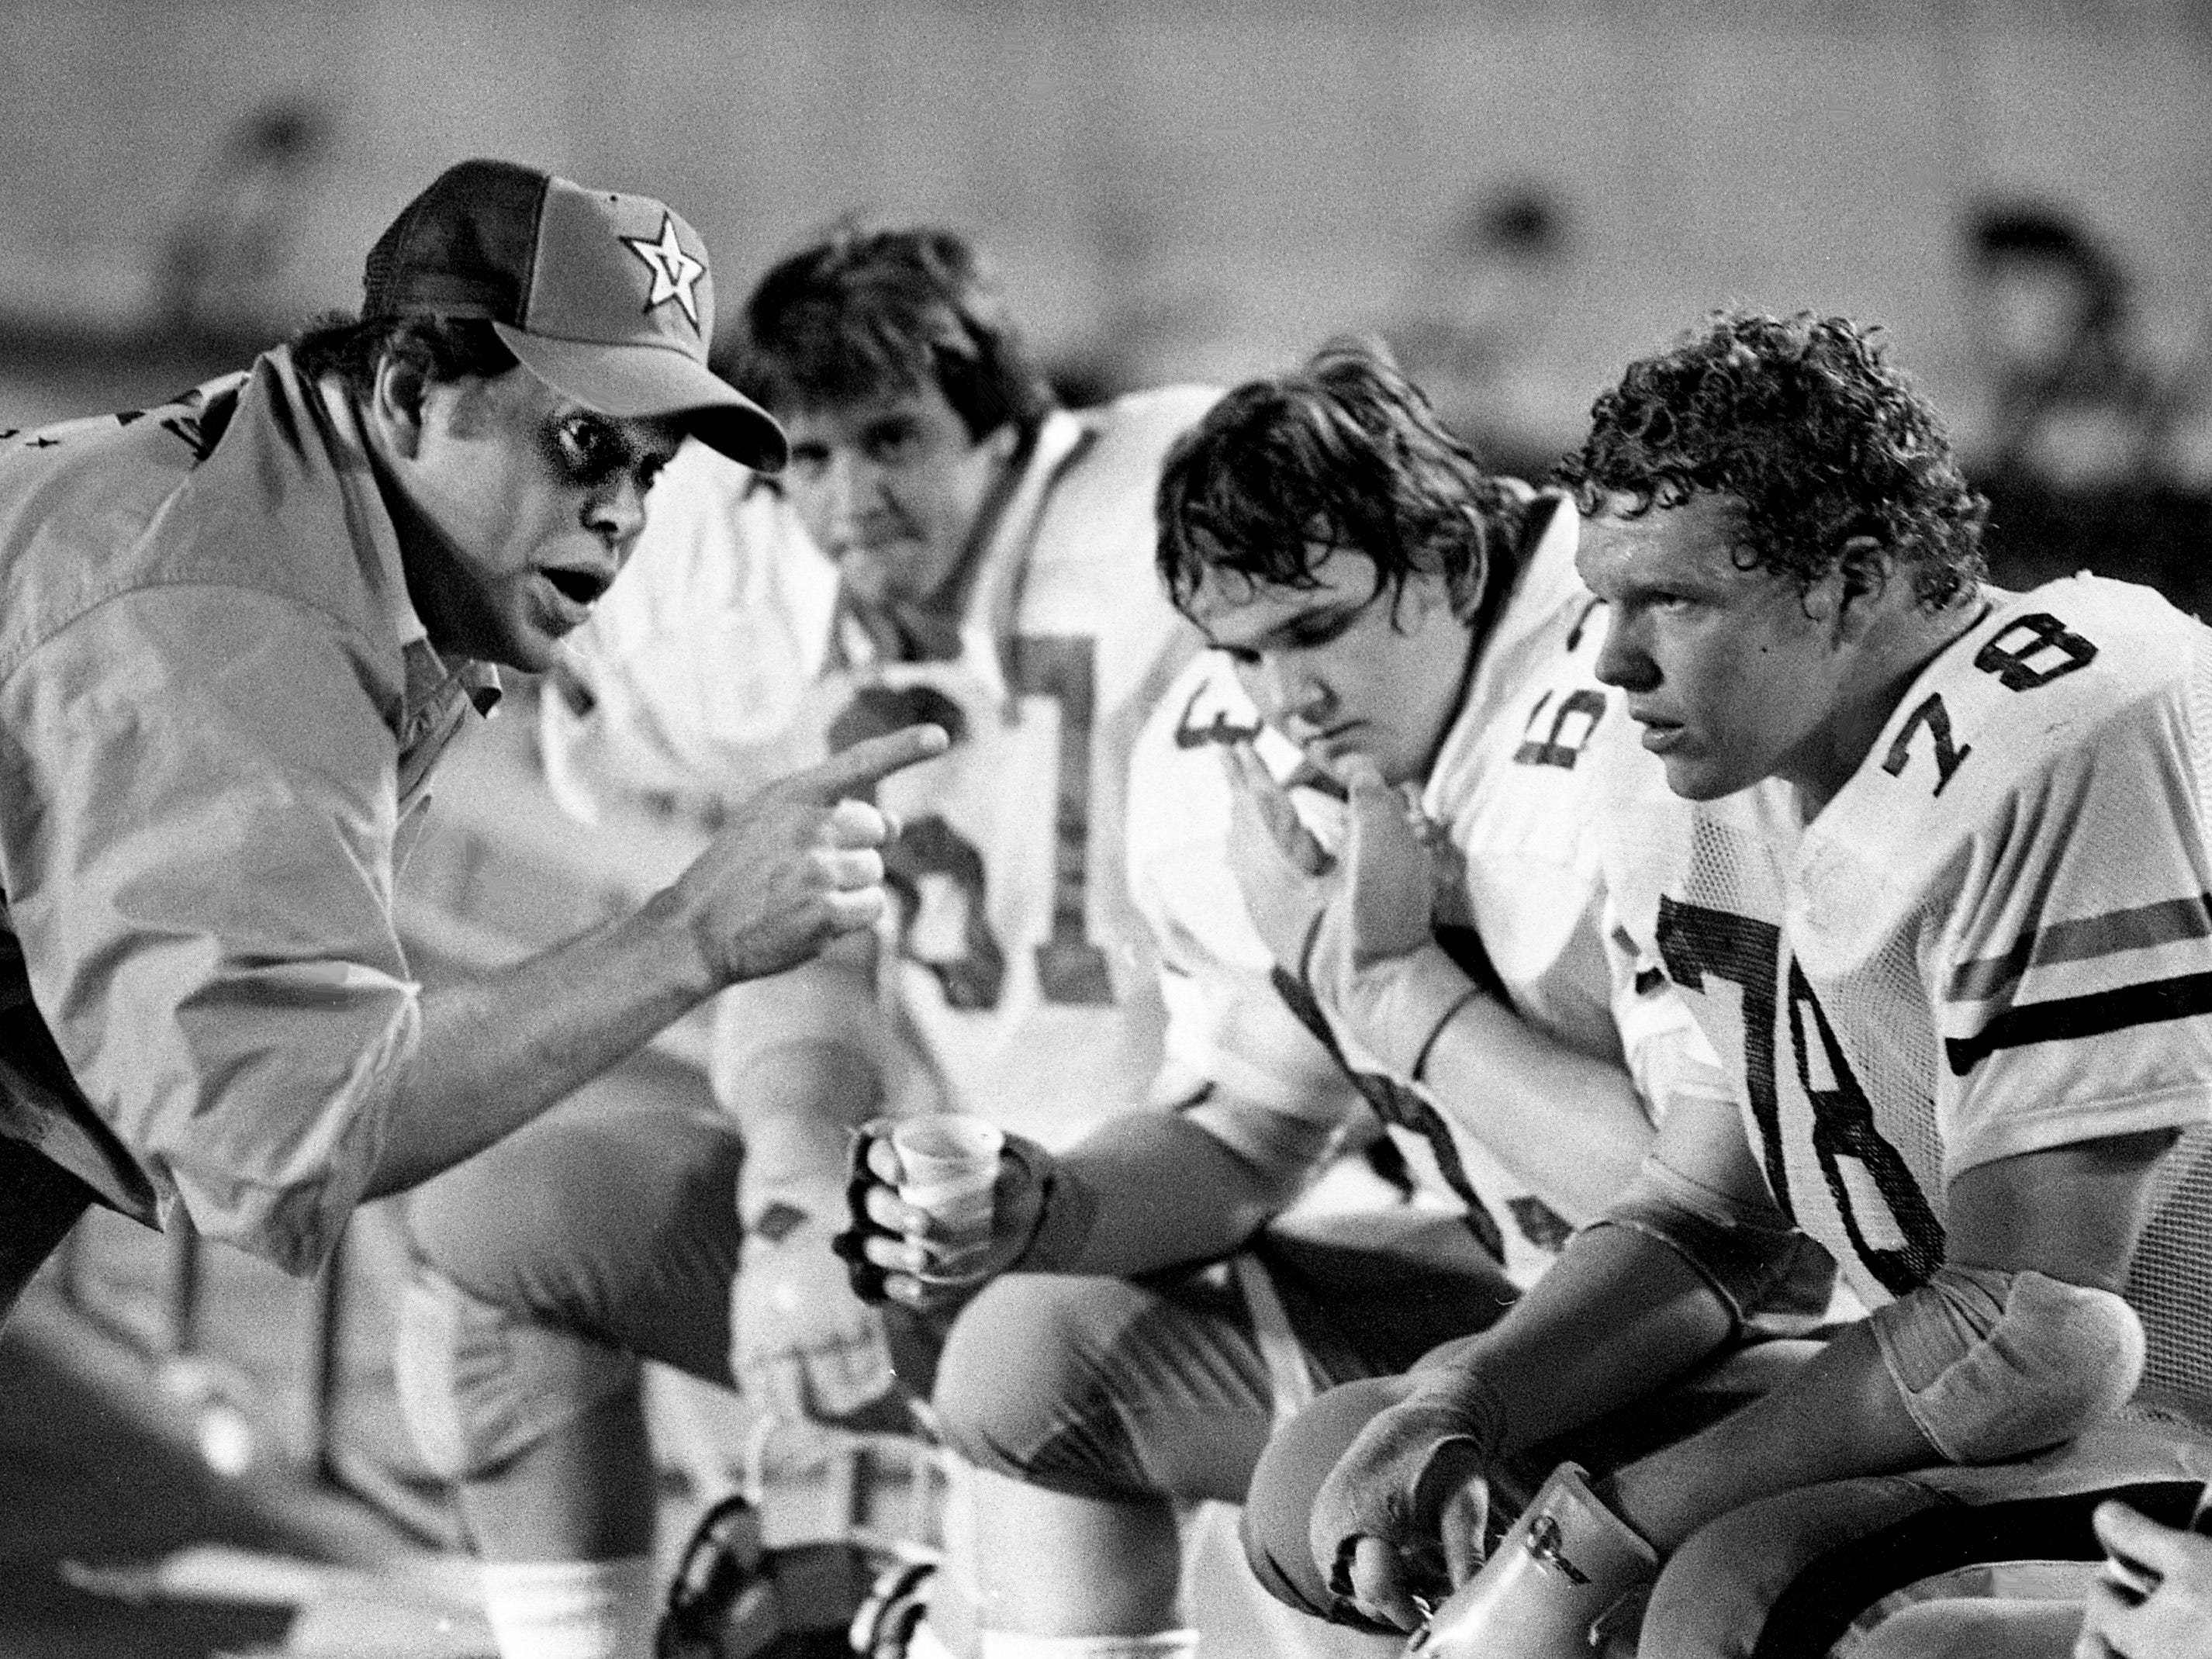 Vanderbilt assistant coach Phillip Fulmer, left, makes a point with the White Team offensive linemen Greg Simmons (67), Loie Hudgins (63) and Tommy Woodroof (78) during the Commodores' annual Vanderbilt spring football game at Dudley Field on April 21, 1979. The offensive line has shown the greatest improvement in spring work.